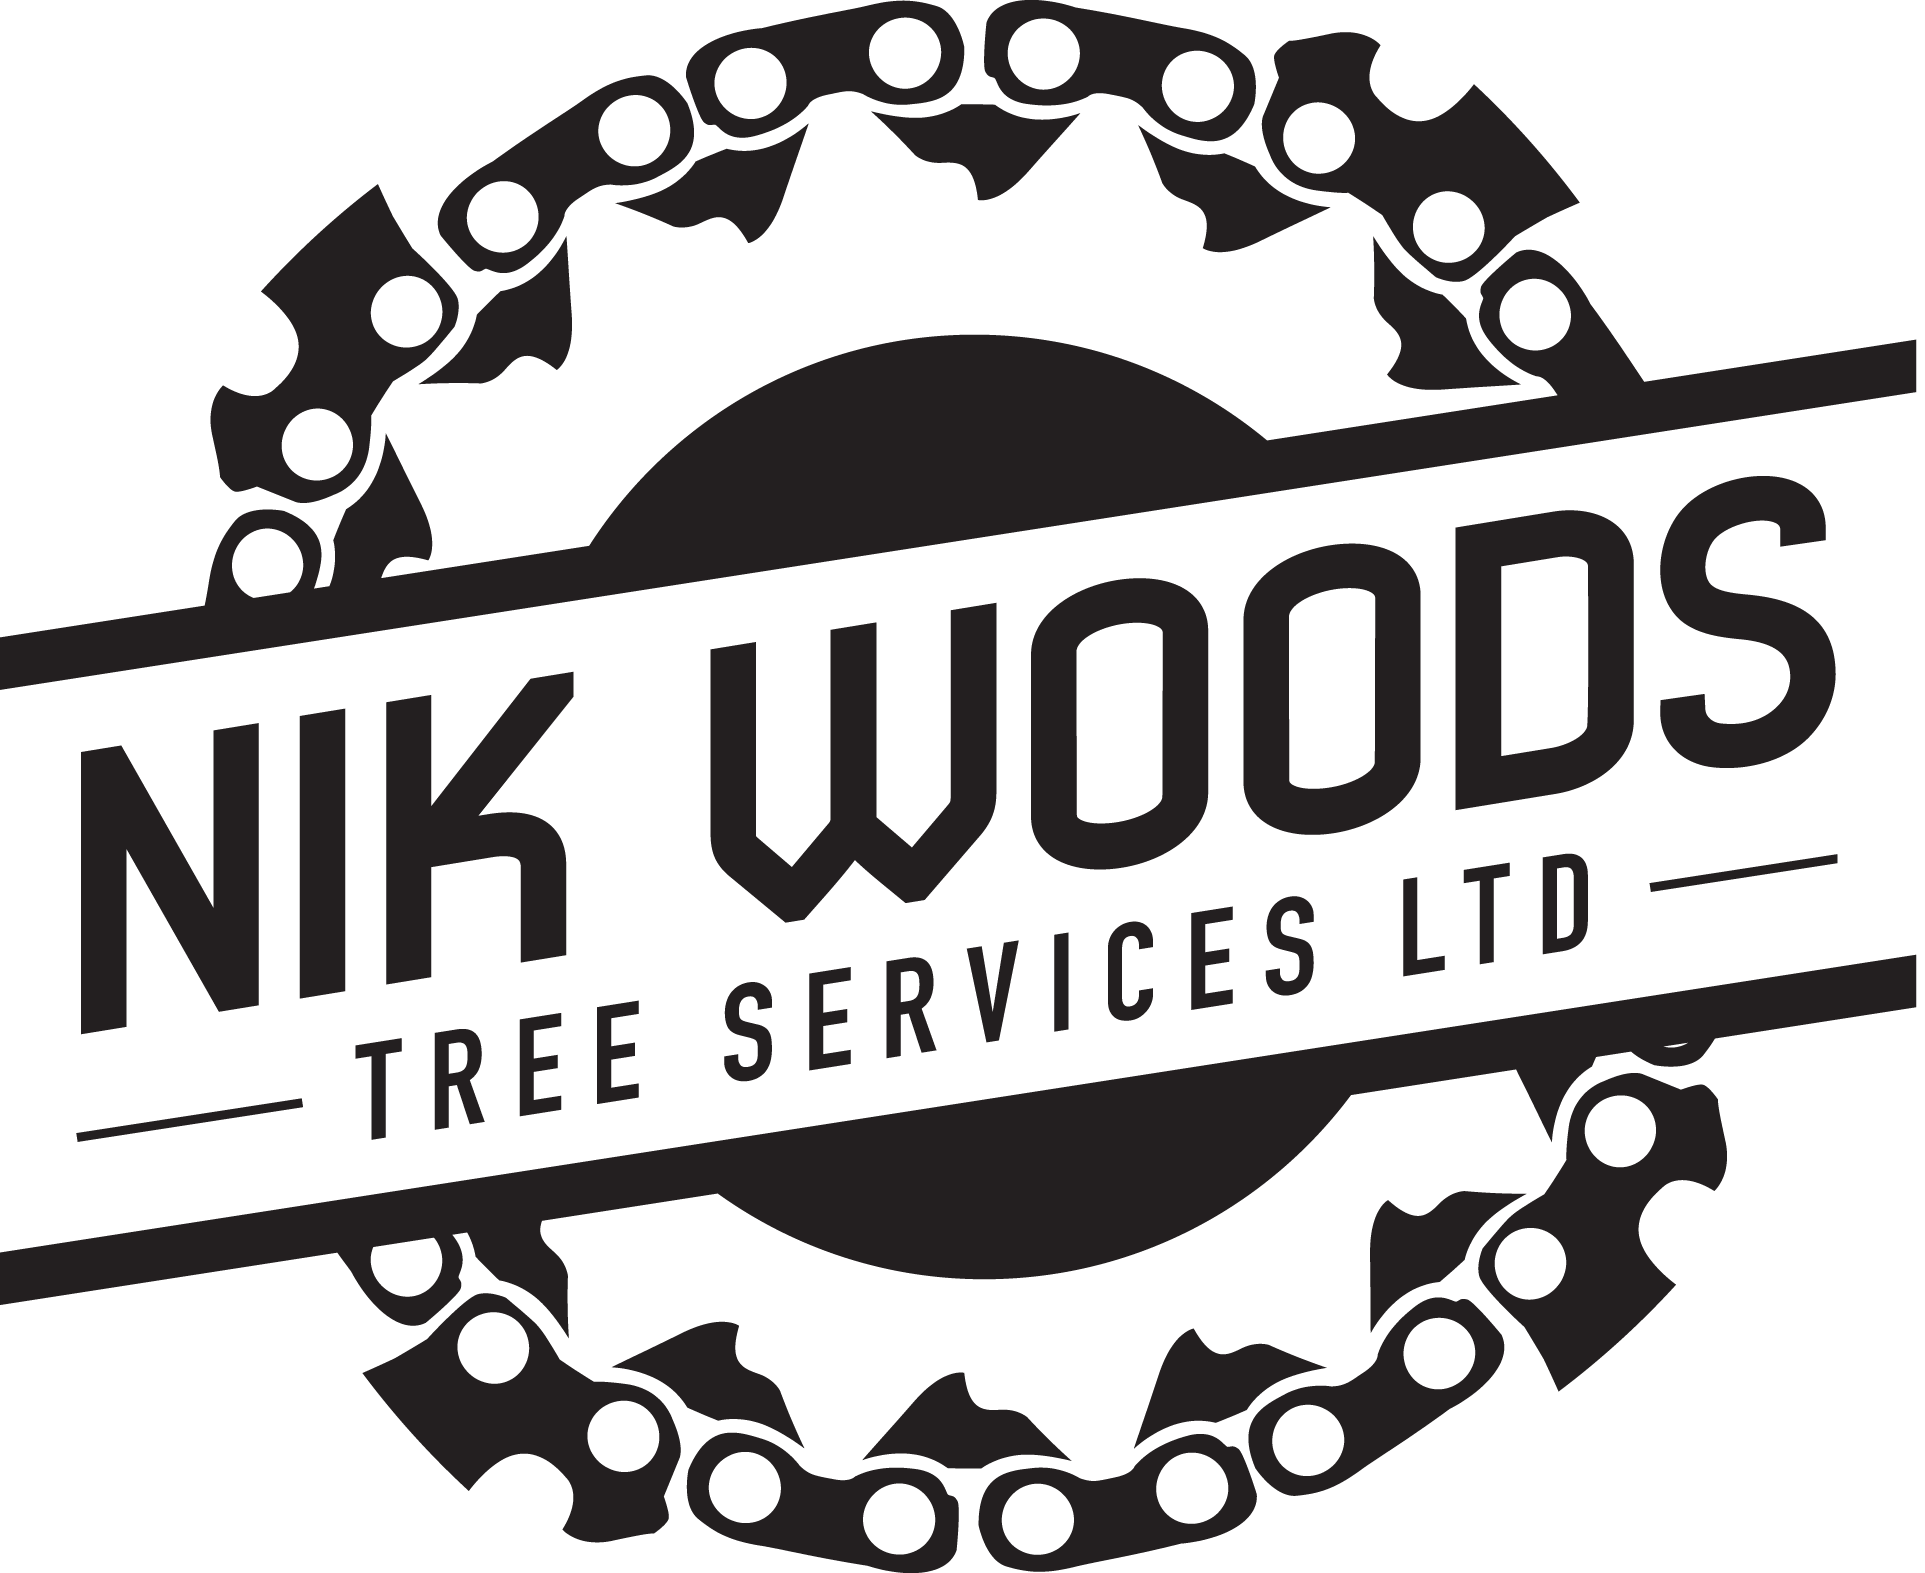 Tree felling clipart picture transparent stock Home - Nik Woods Tree Services picture transparent stock